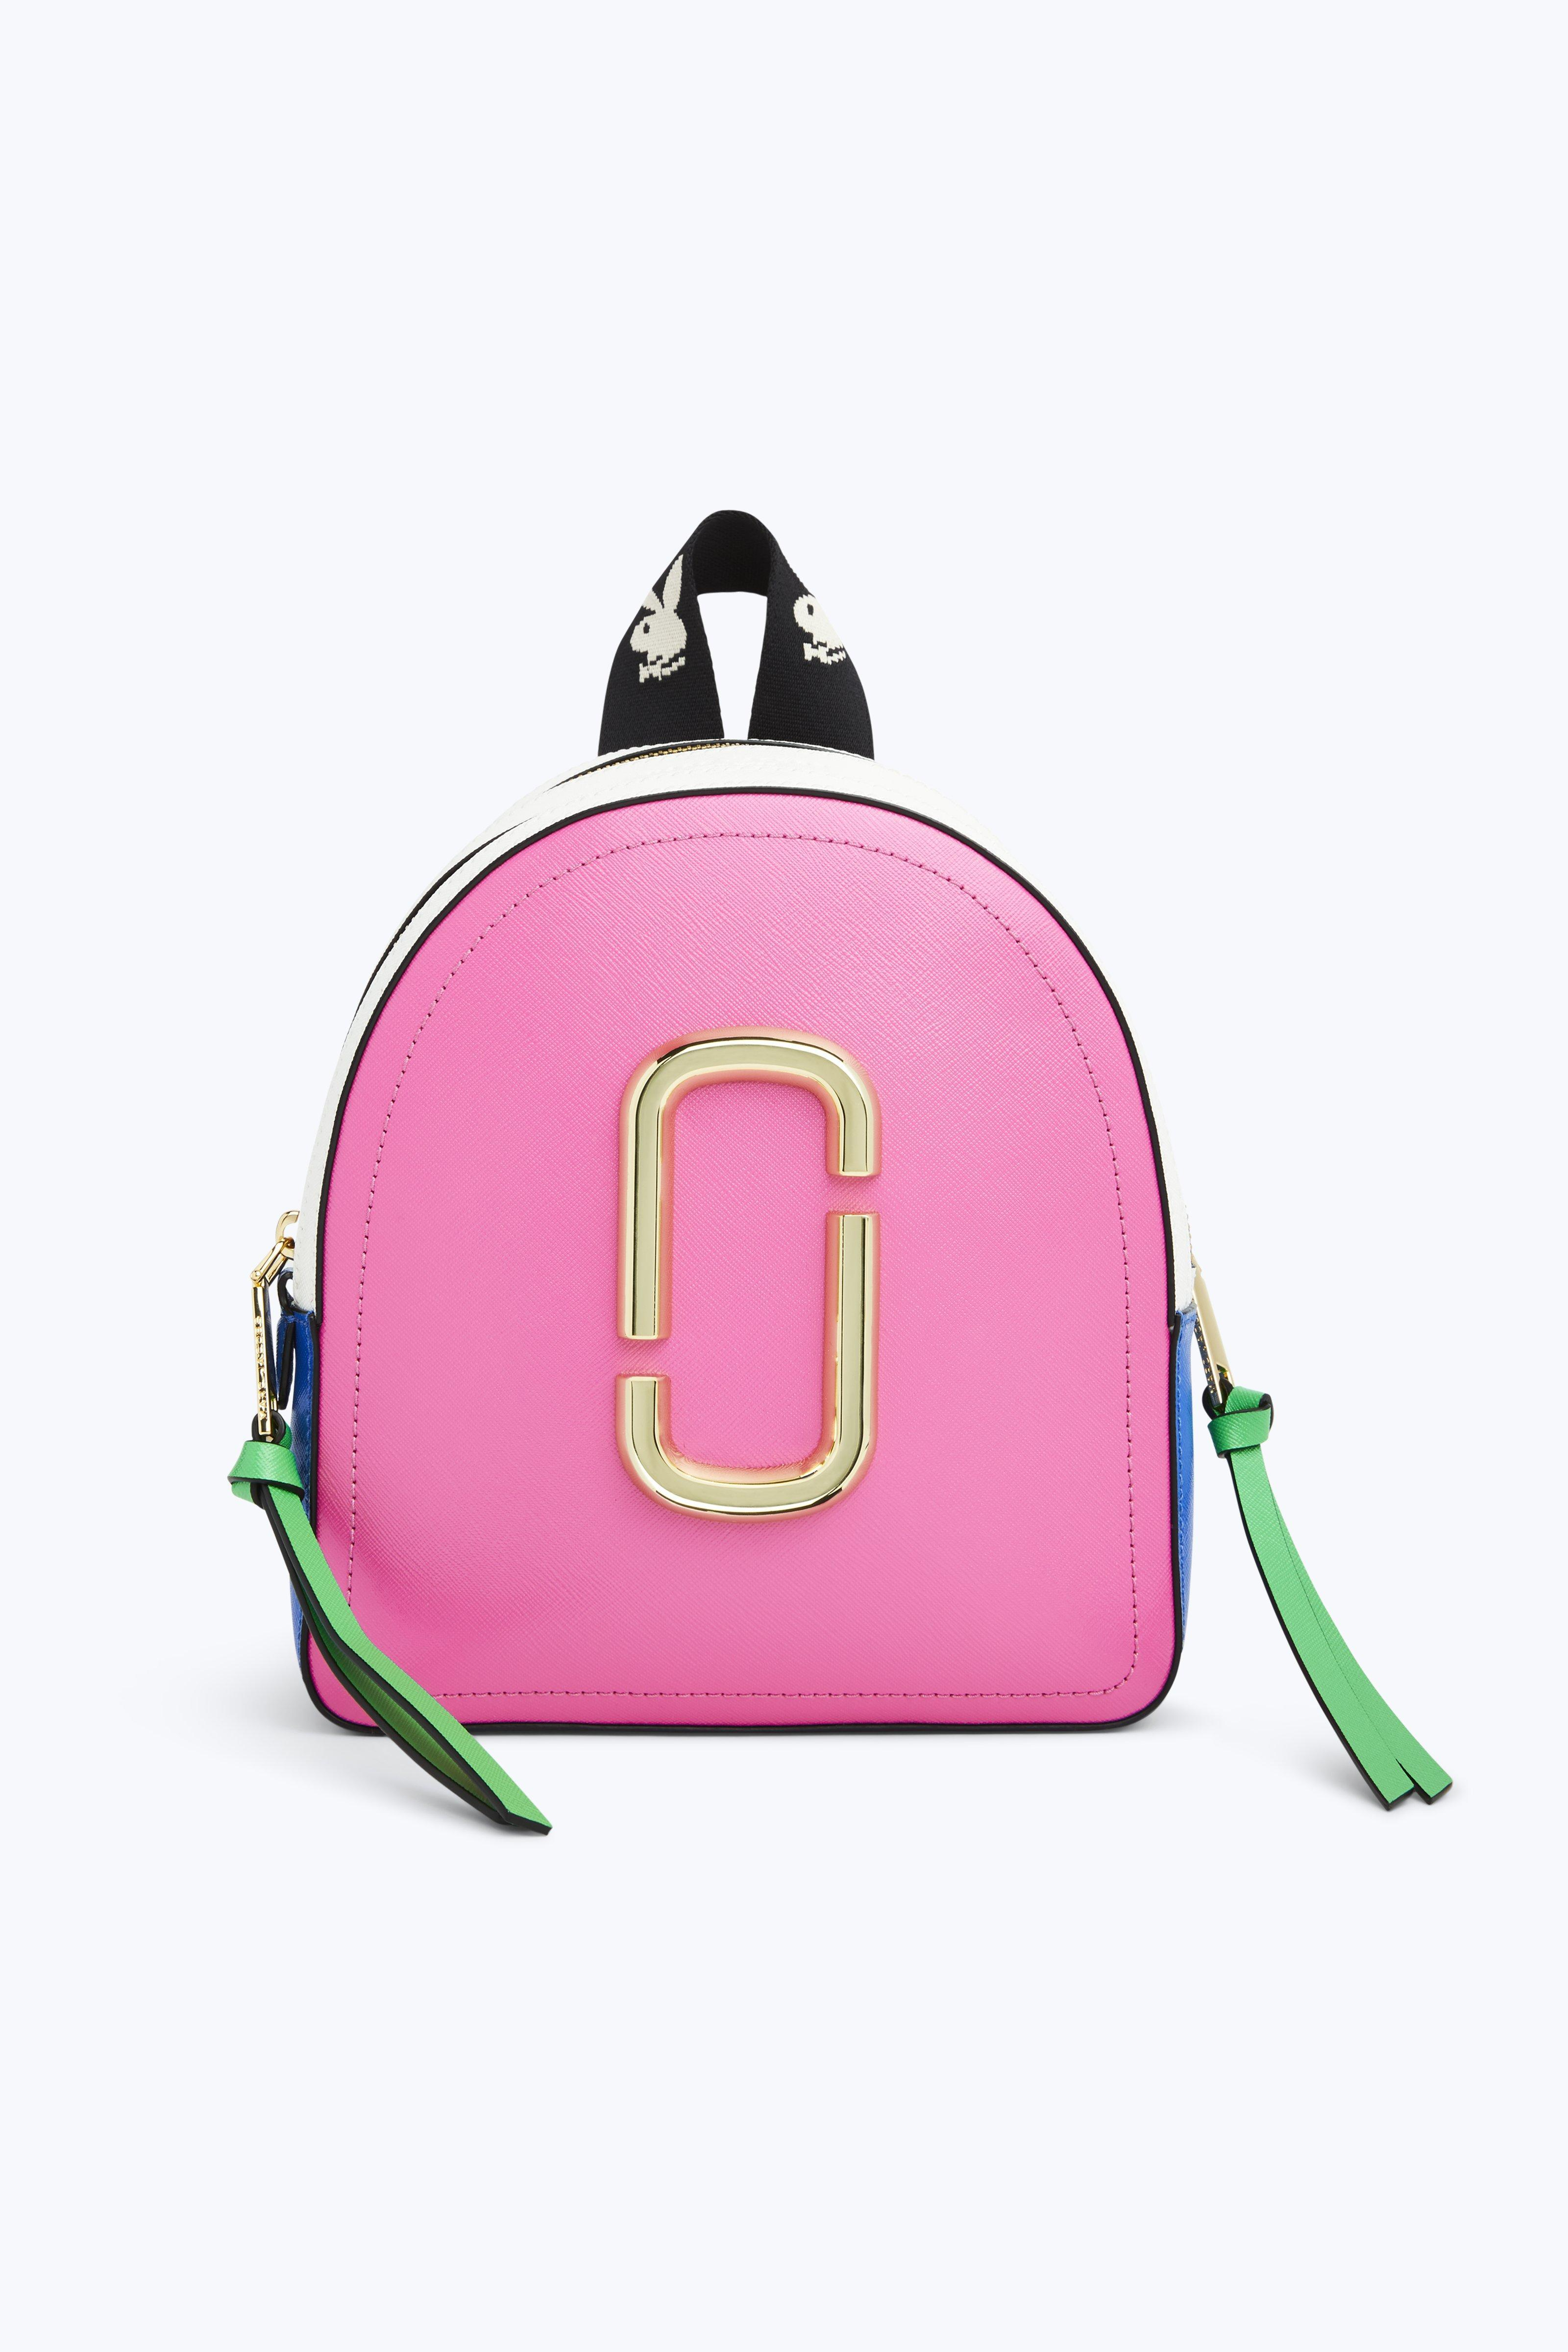 1e4b70e057d2 Marc Jacobs Playboy Bunny Colorblock Leather Backpack In Vivid Pink Multi